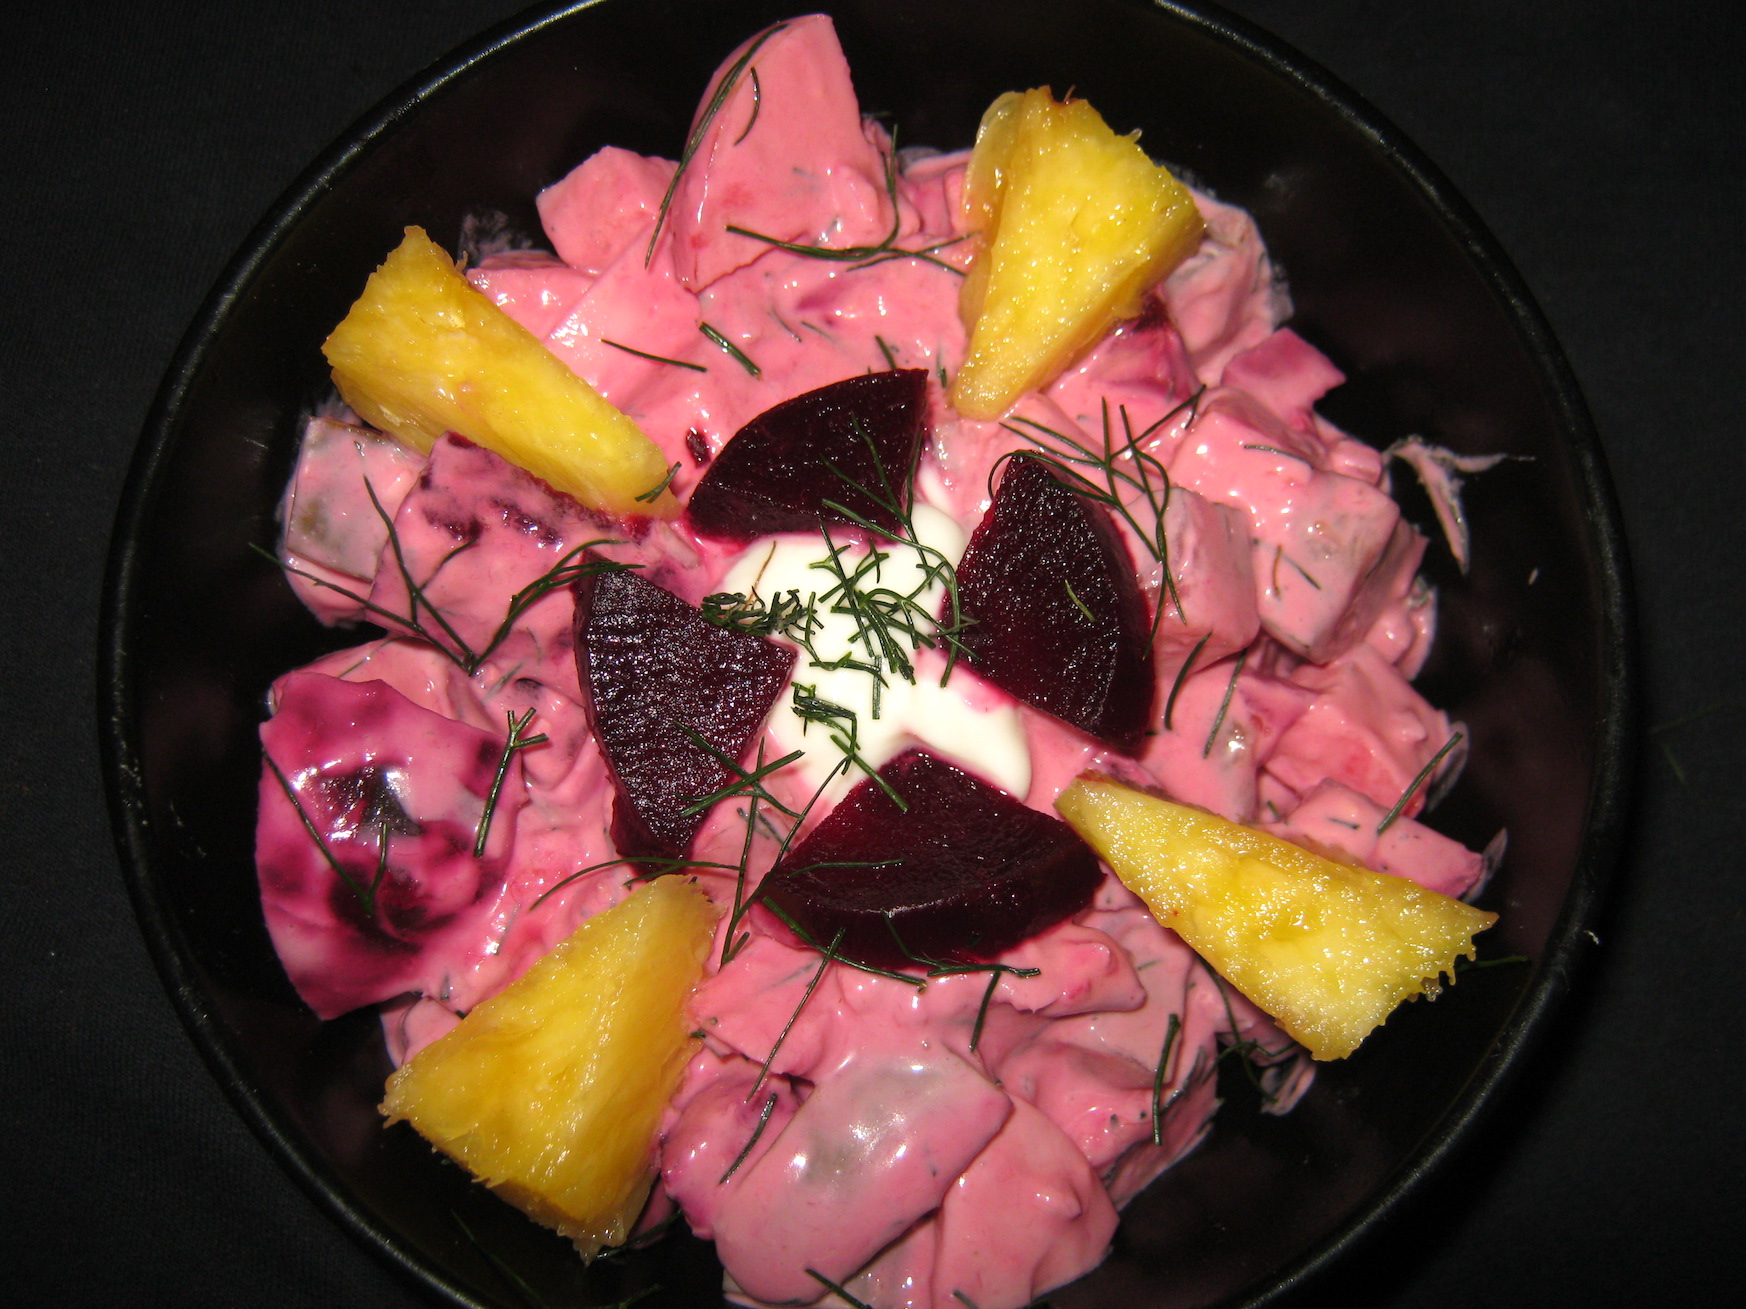 Red Herring Salad garnished with dill, pineapple and beetroot